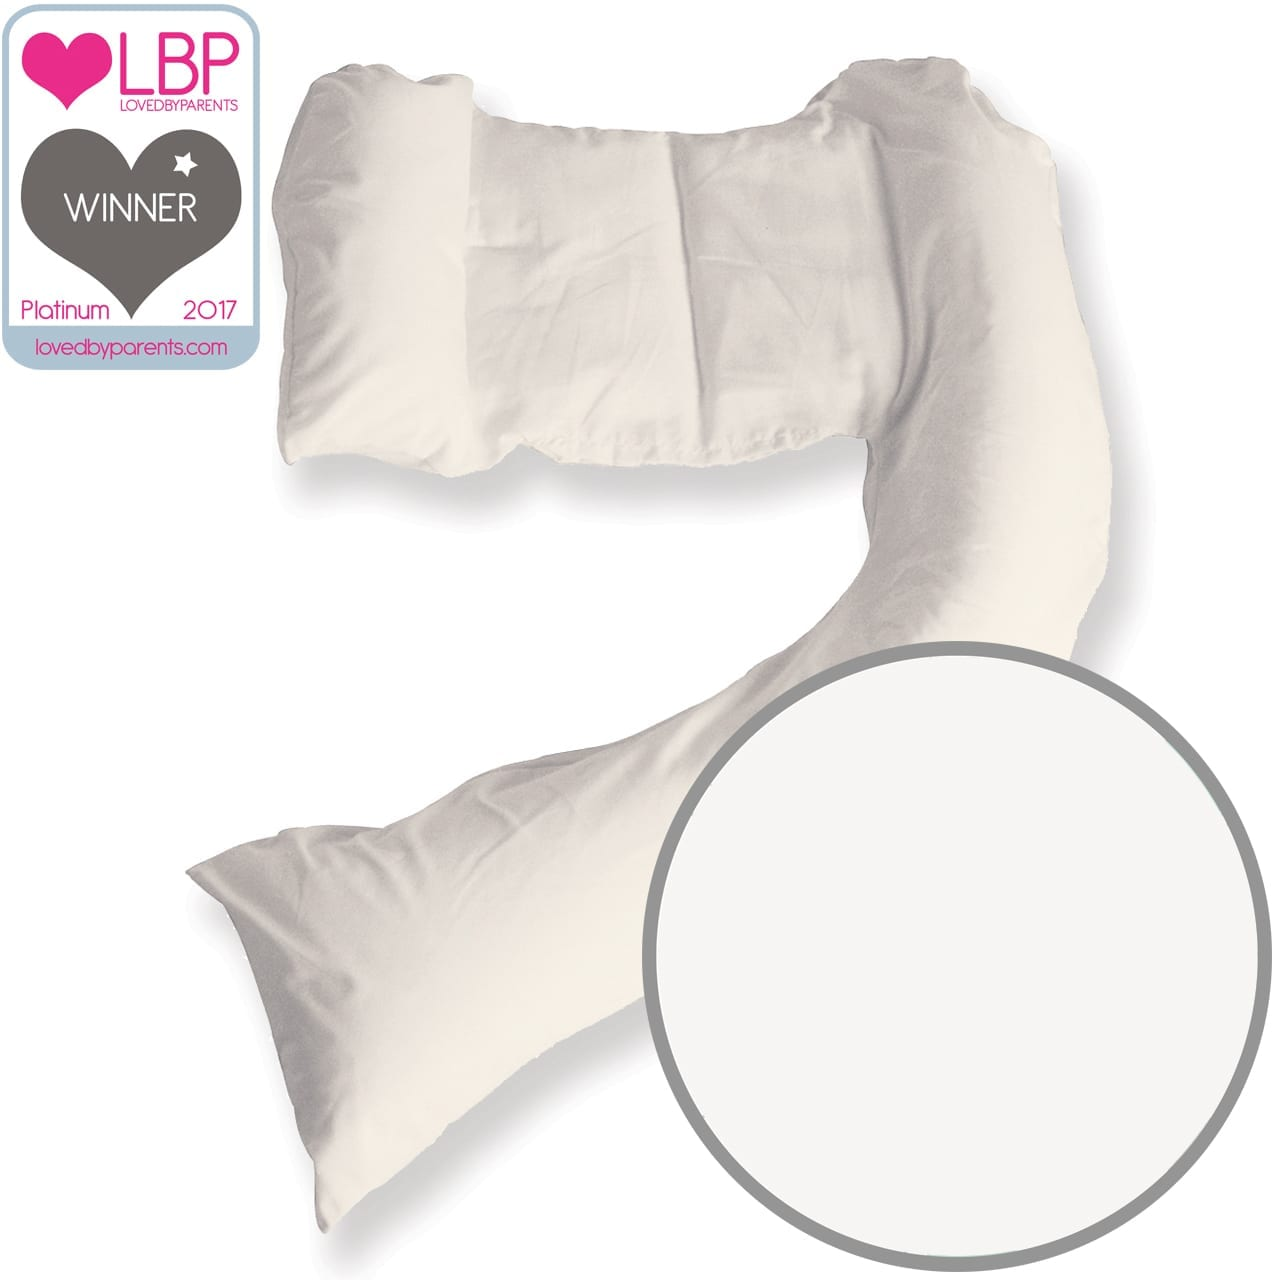 Dreamgenii Pillow – White Cotton product image